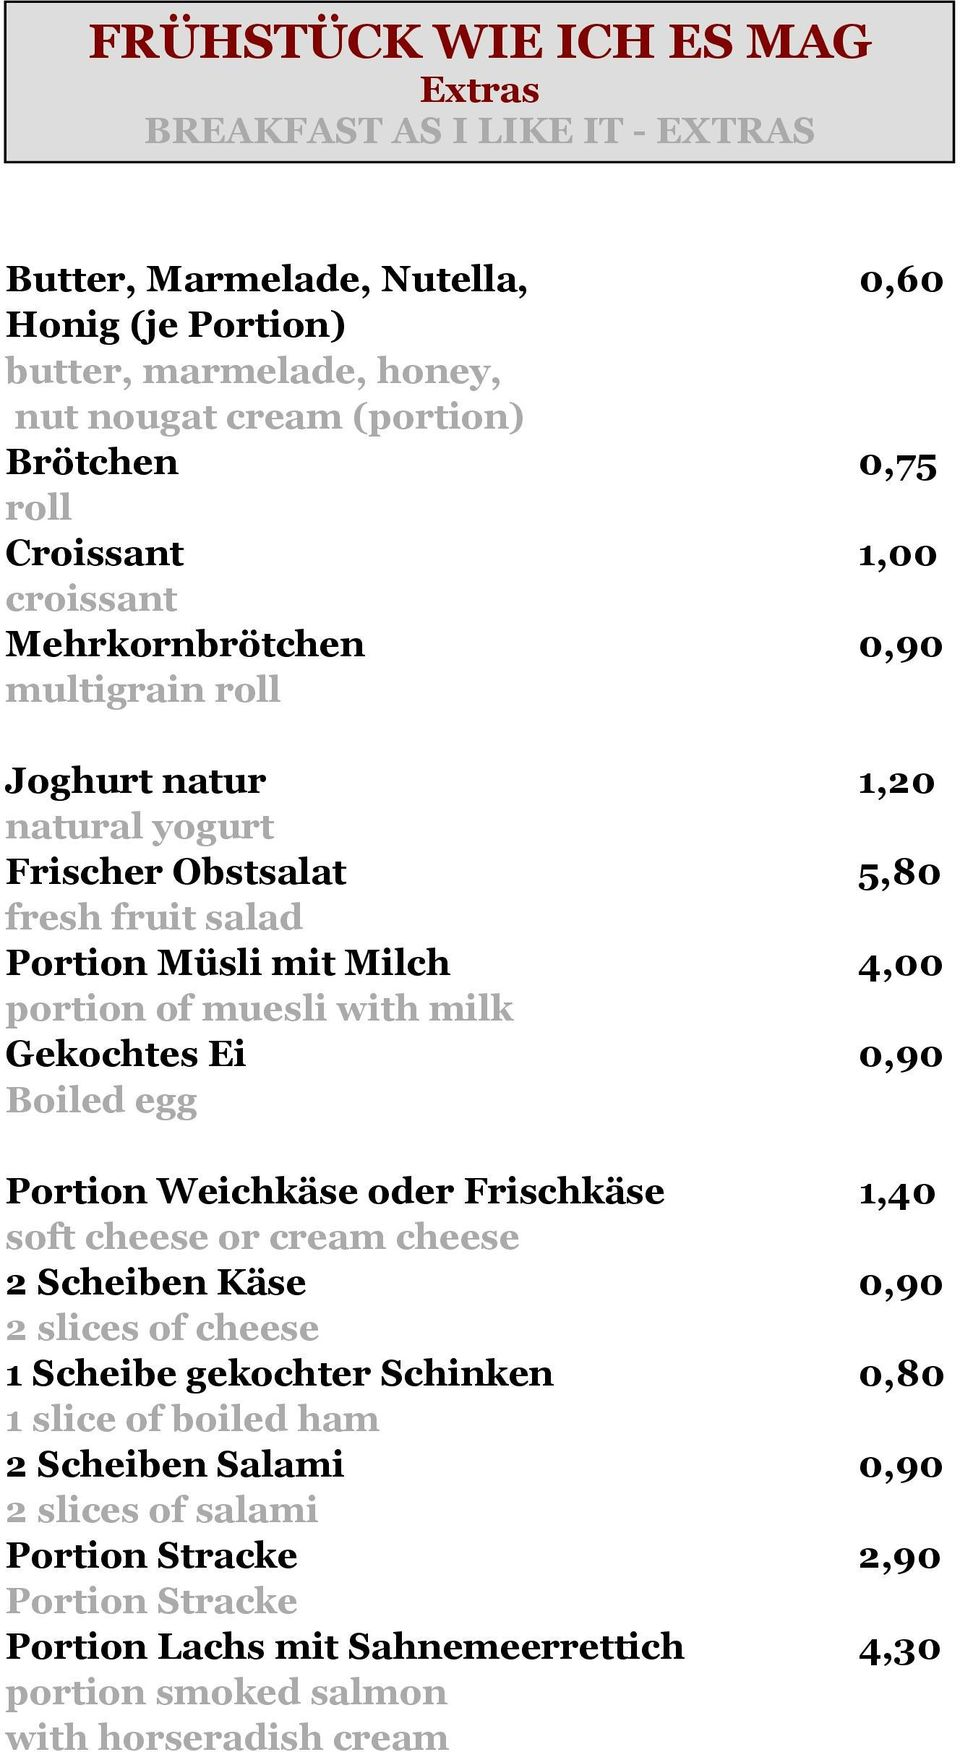 milk Gekochtes Ei 0,90 Boiled egg Portion Weichkäse oder Frischkäse 1,40 soft cheese or cream cheese 2 Scheiben Käse 0,90 2 slices of cheese 1 Scheibe gekochter Schinken 0,80 1